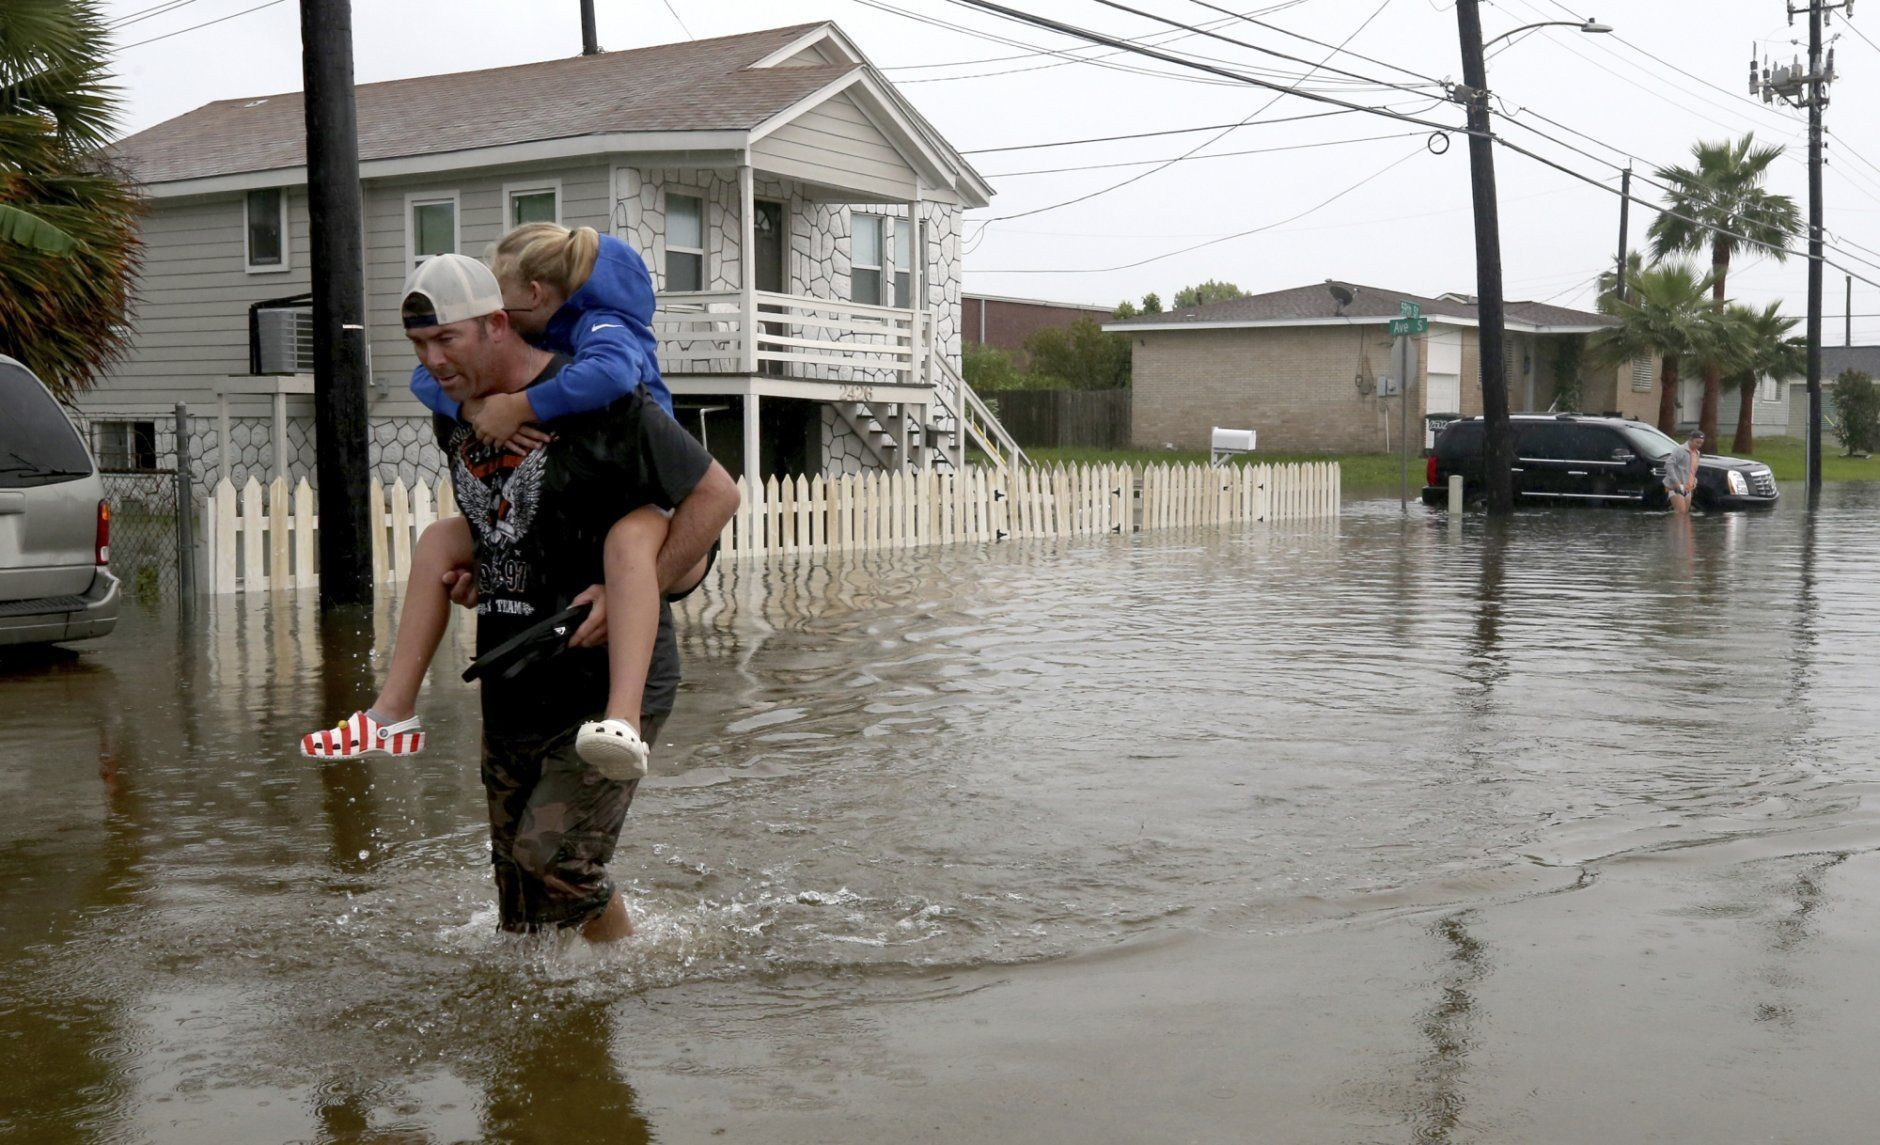 Terry Spencer carries his daughter, Trinity, through high water on 59th Street near Stewart Road in Galveston, Texas, Wednesday, Sept. 18, 2019, as heavy rain from Tropical Depression Imelda caused street flooding on the island. (Jennifer Reynolds/The Galveston County Daily News via AP)